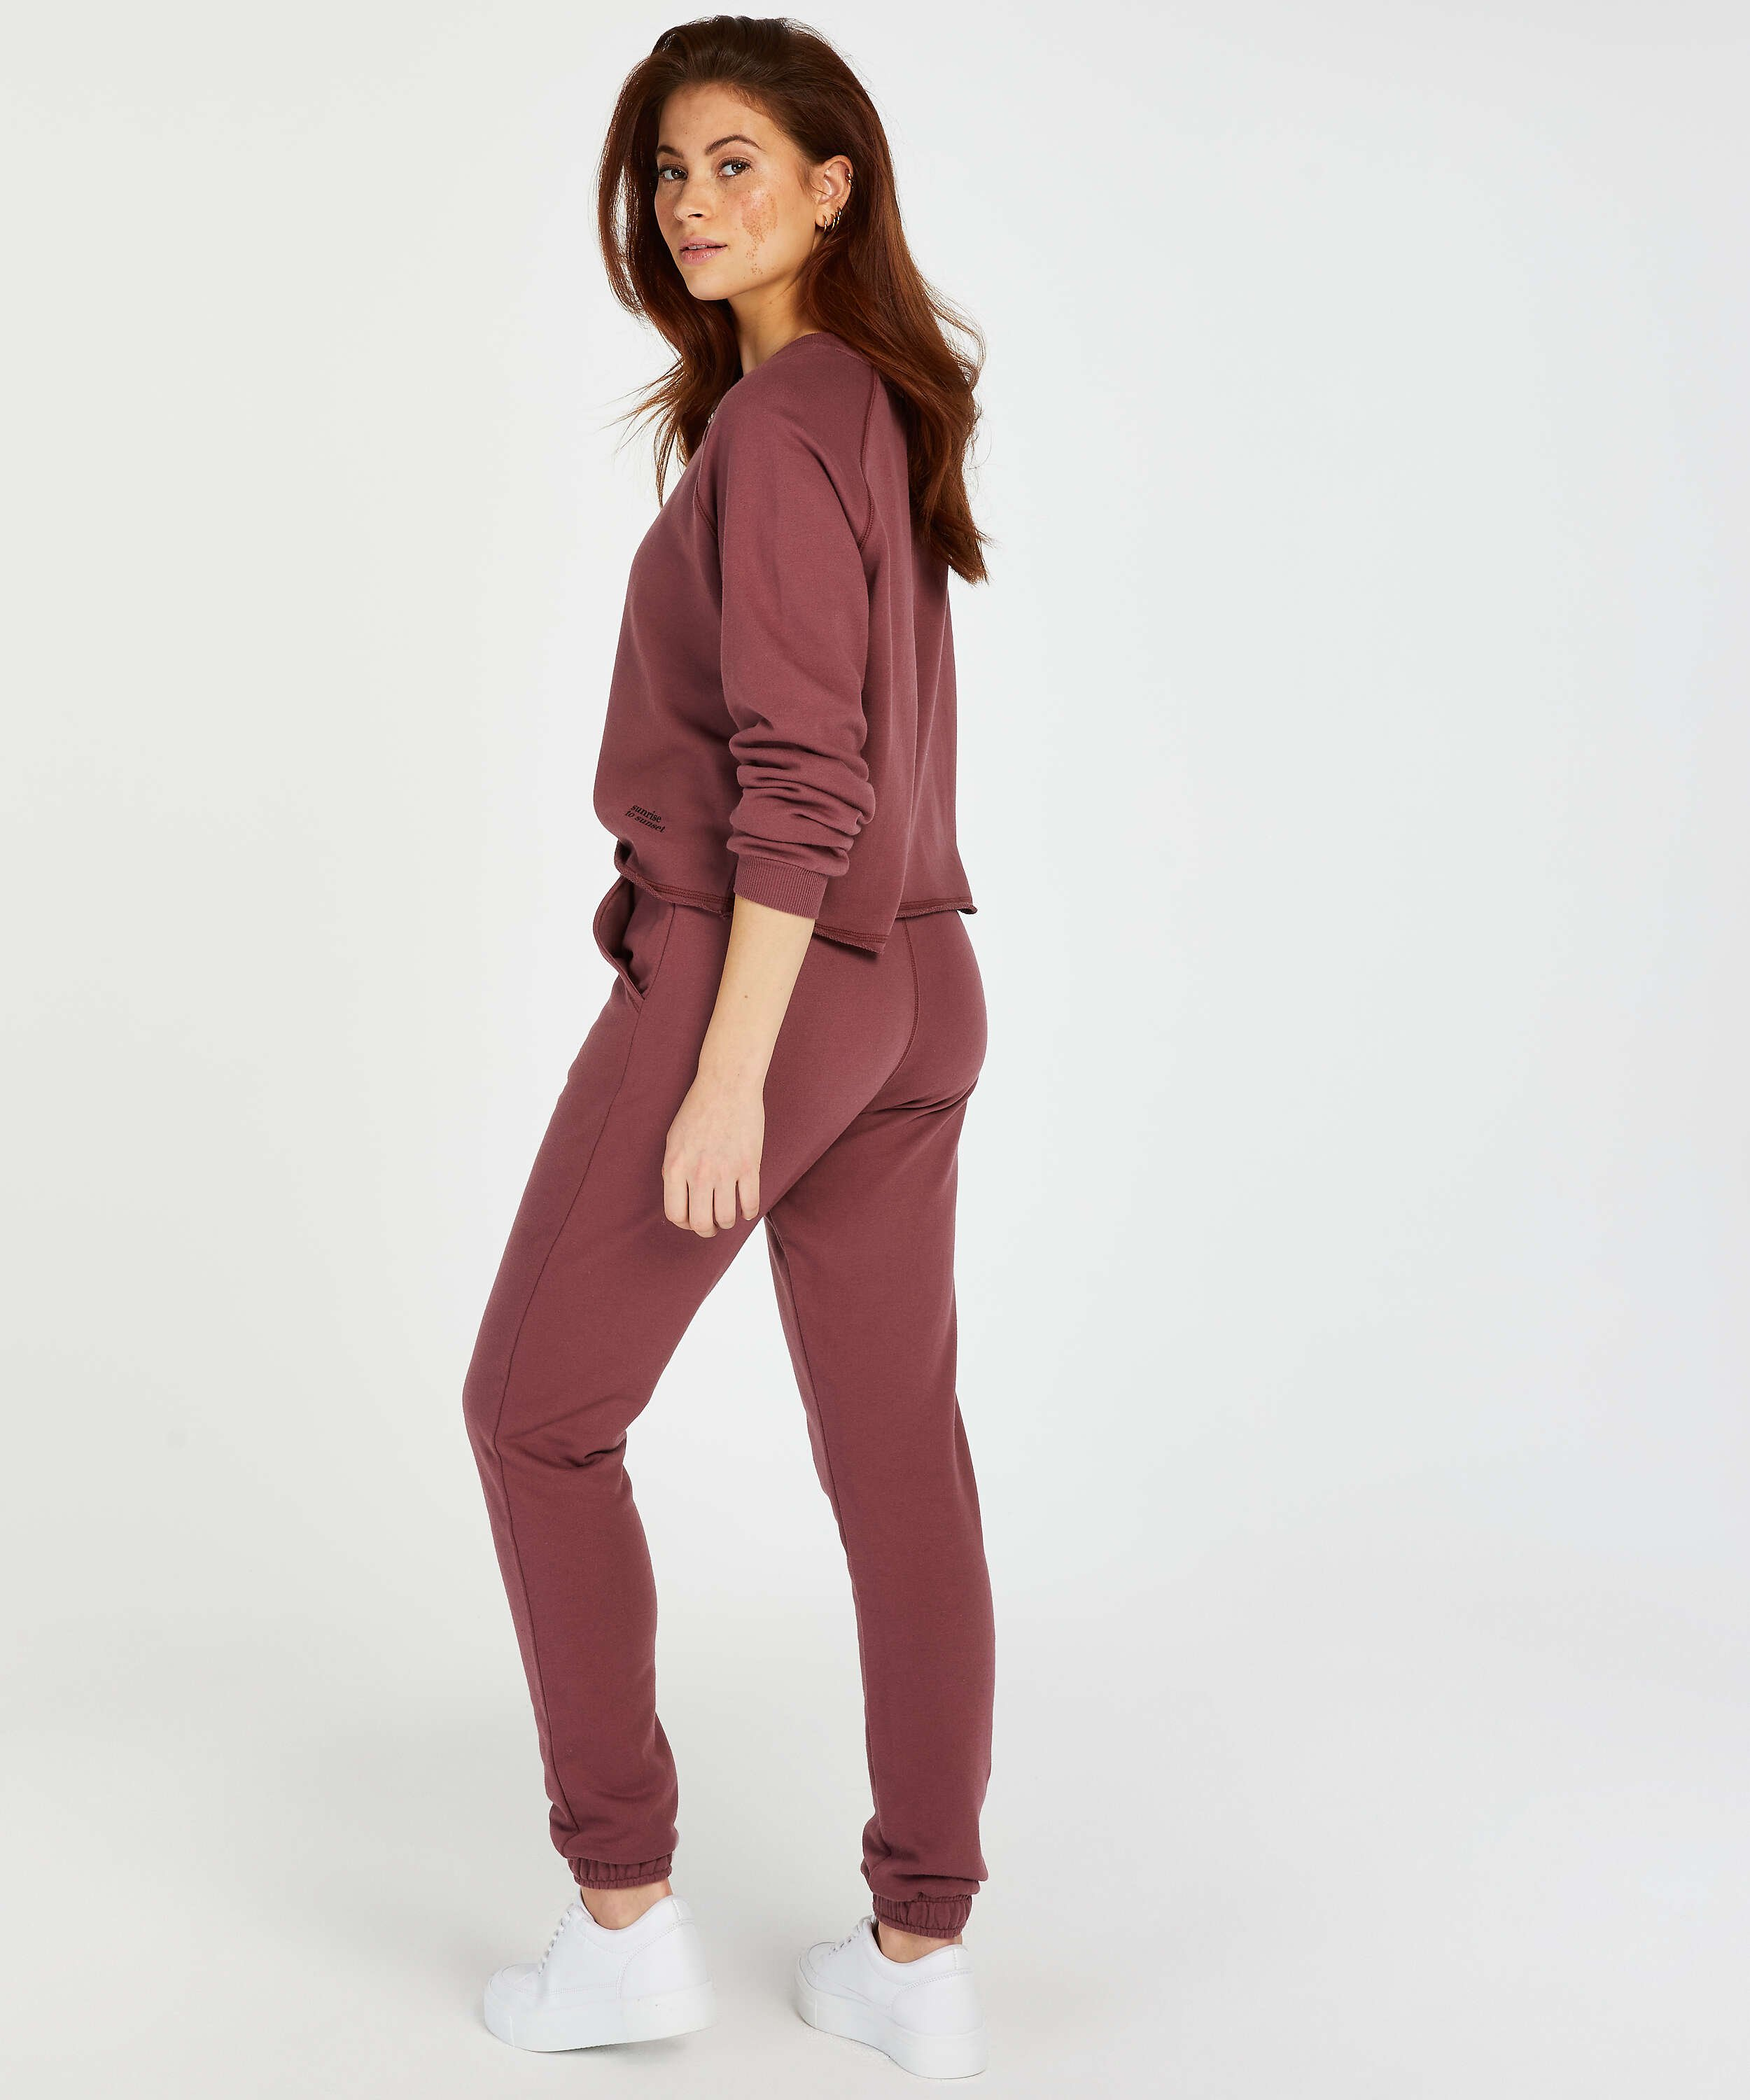 Sweat French Long-Sleeved Top, Pink, main